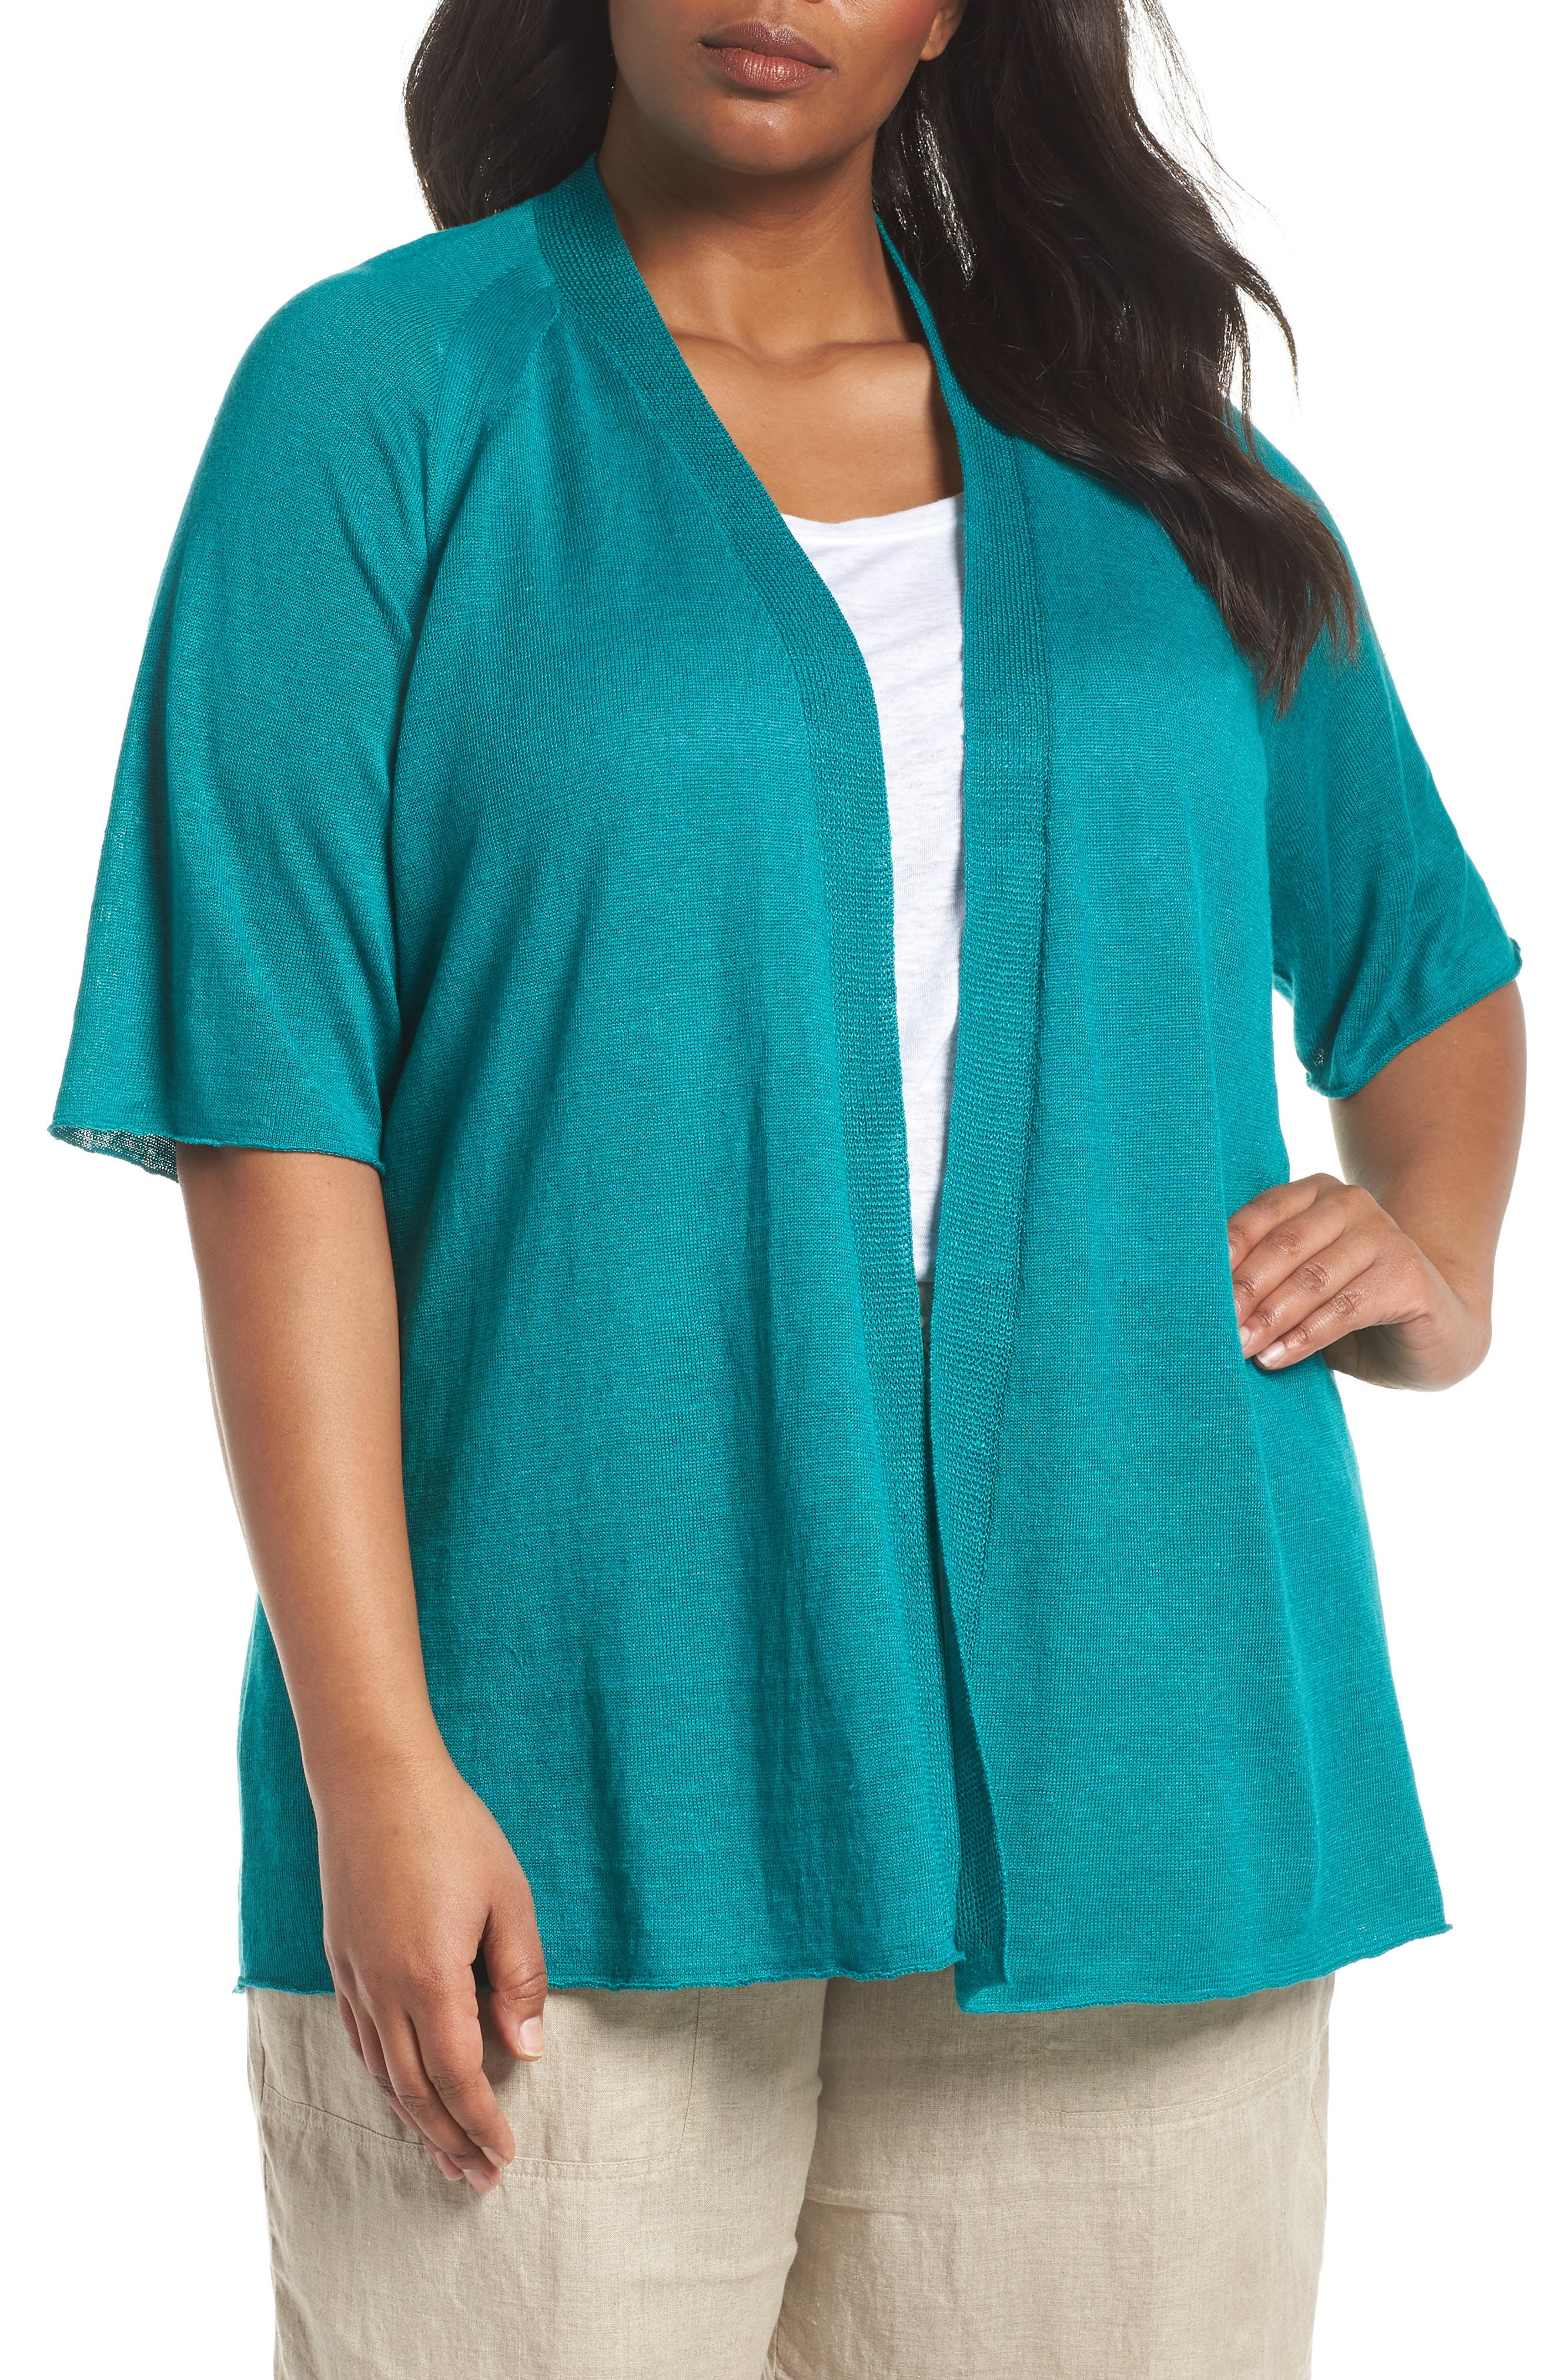 Organic Linen Cardigan,                         Main,                         color, Turquoise